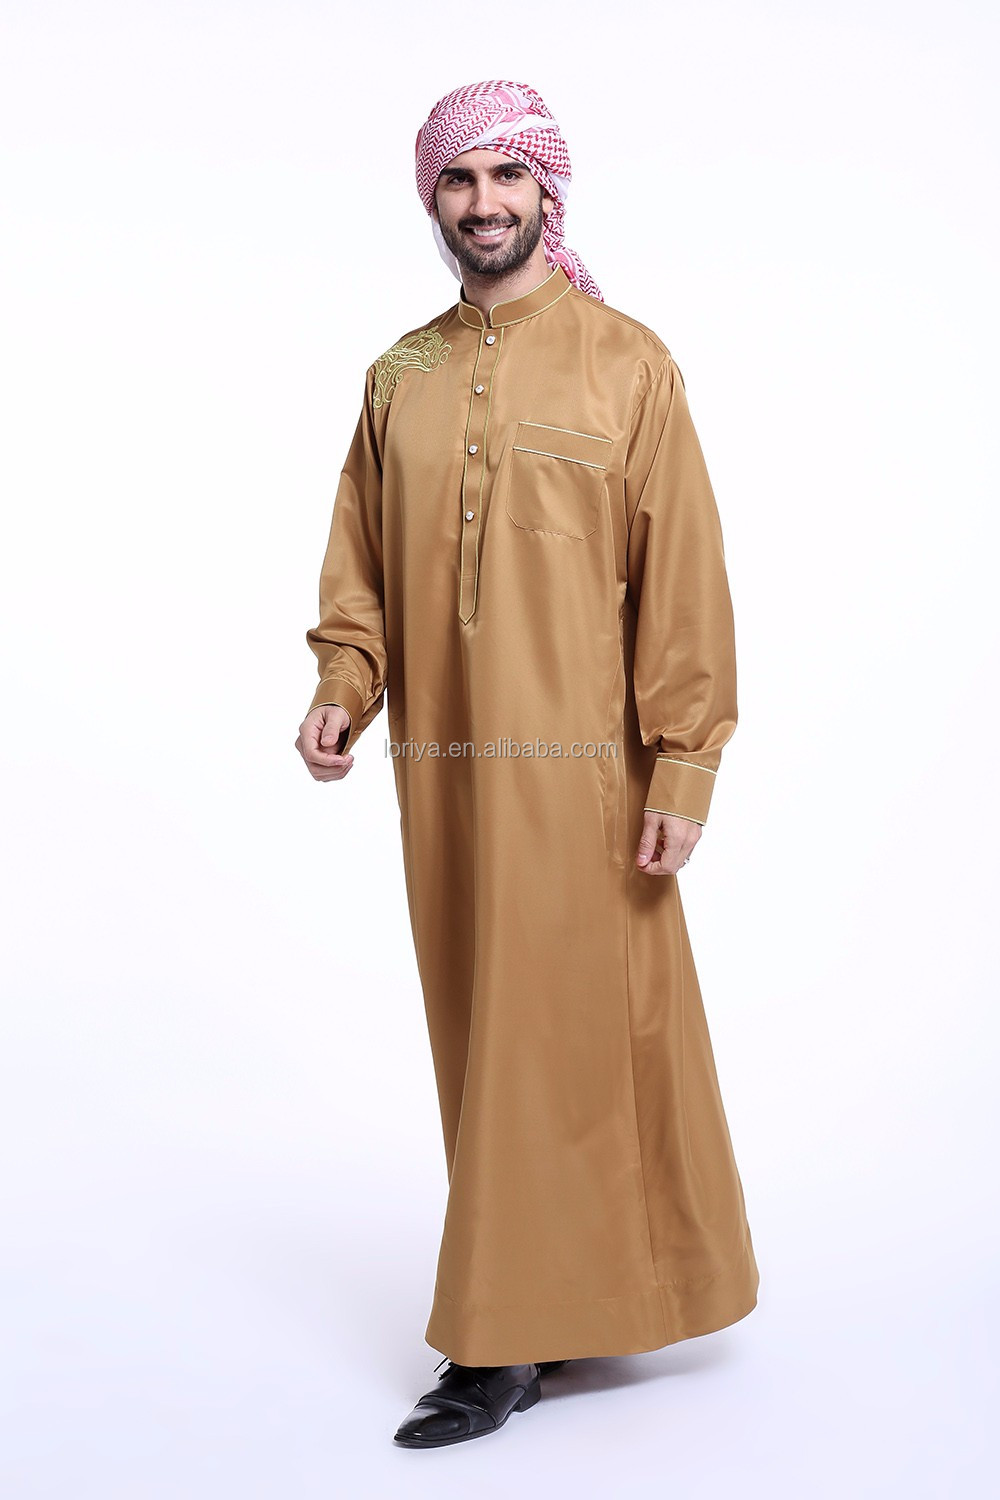 New fancy stylish muslim thobe Arabian robe jubah abaya islamic kantan kimono maxi dubai abaya for men